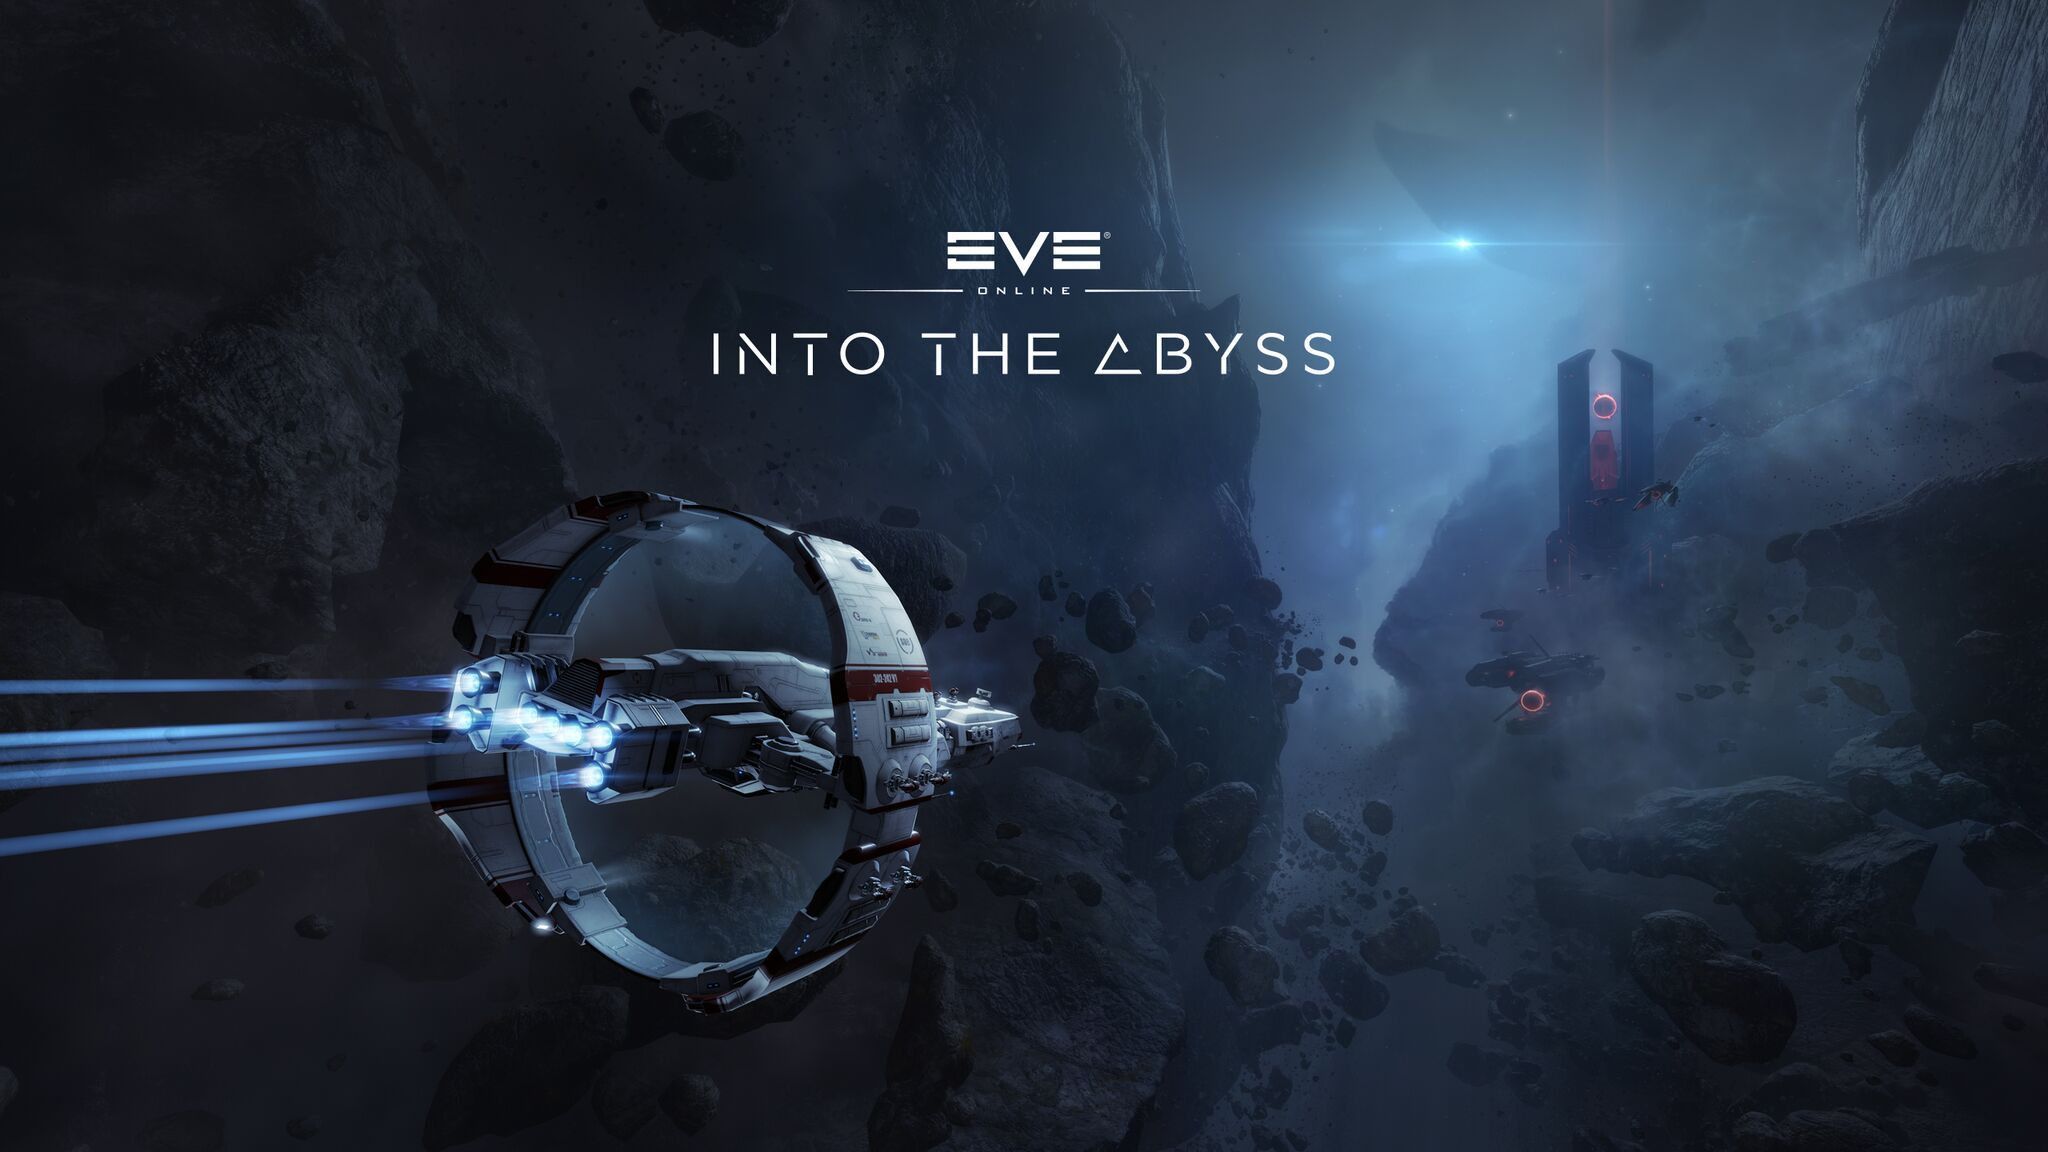 eve online dating Own a part of a multi-billion dollar industry with adam & eve stores learn how to start own adam & eve retail stores, required investment & other details.